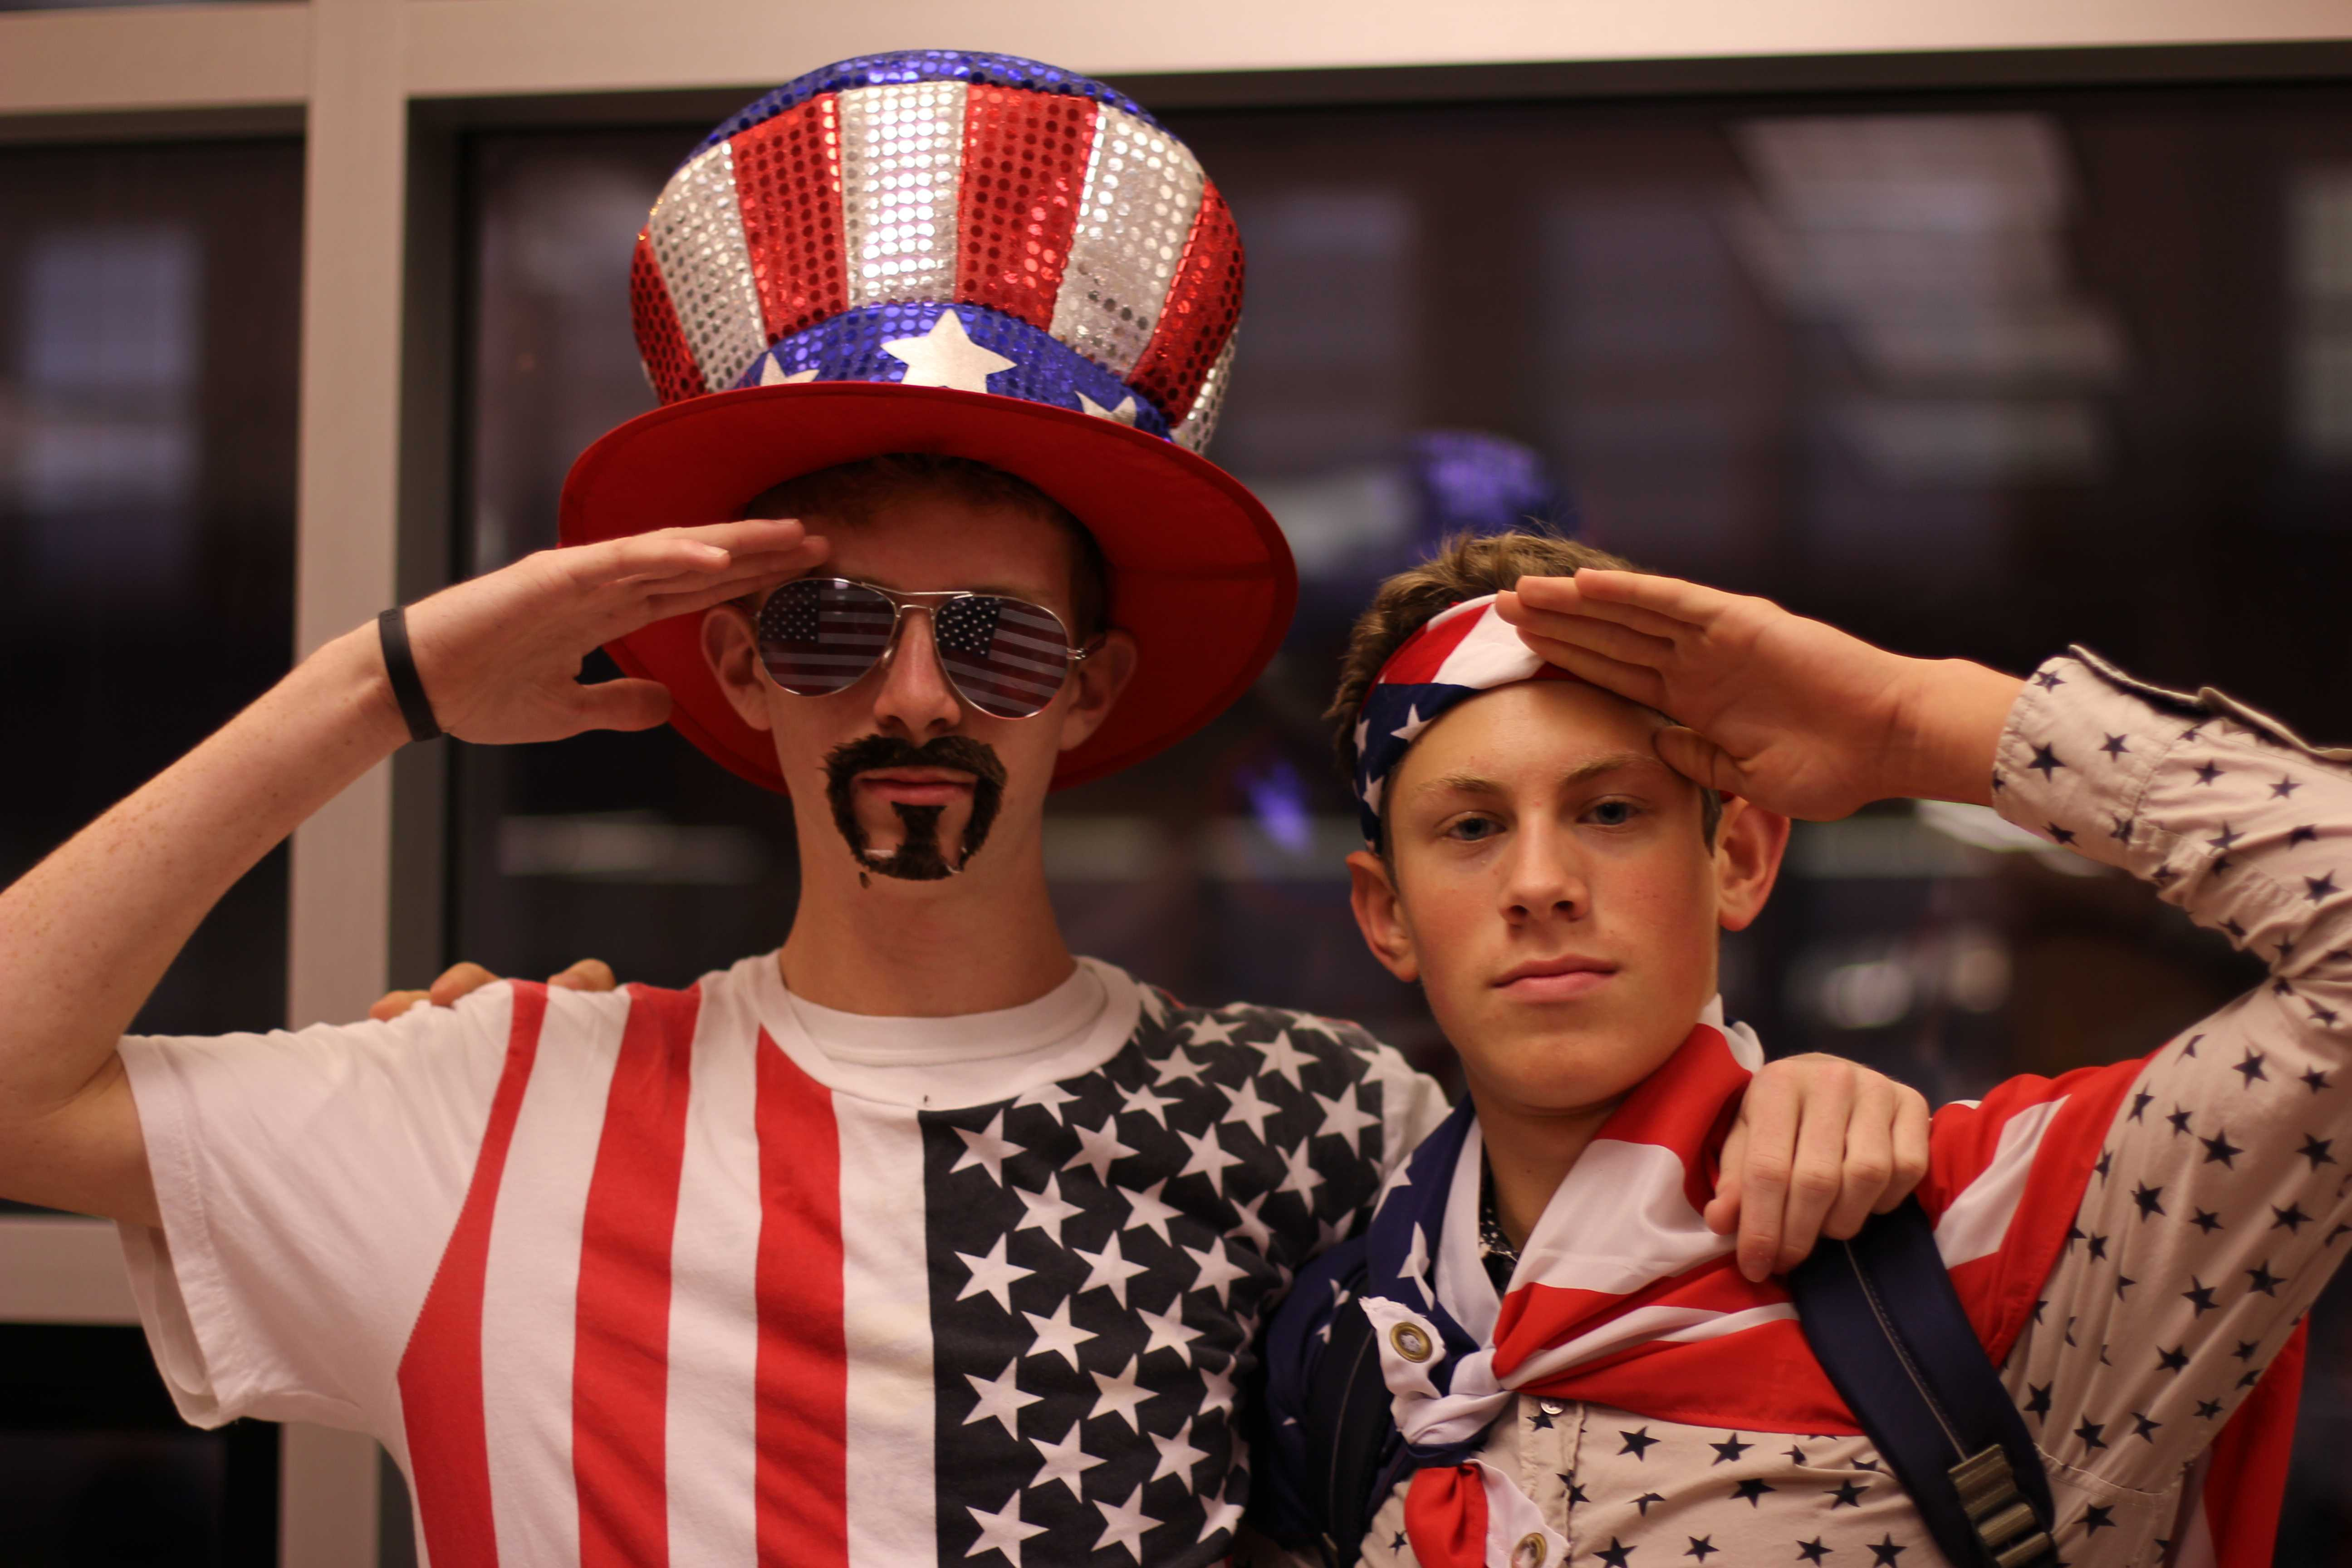 Jackson Hull, (11) and Brent Wesley, (11) salute to show their American spirit. Photo by Samantha Klein